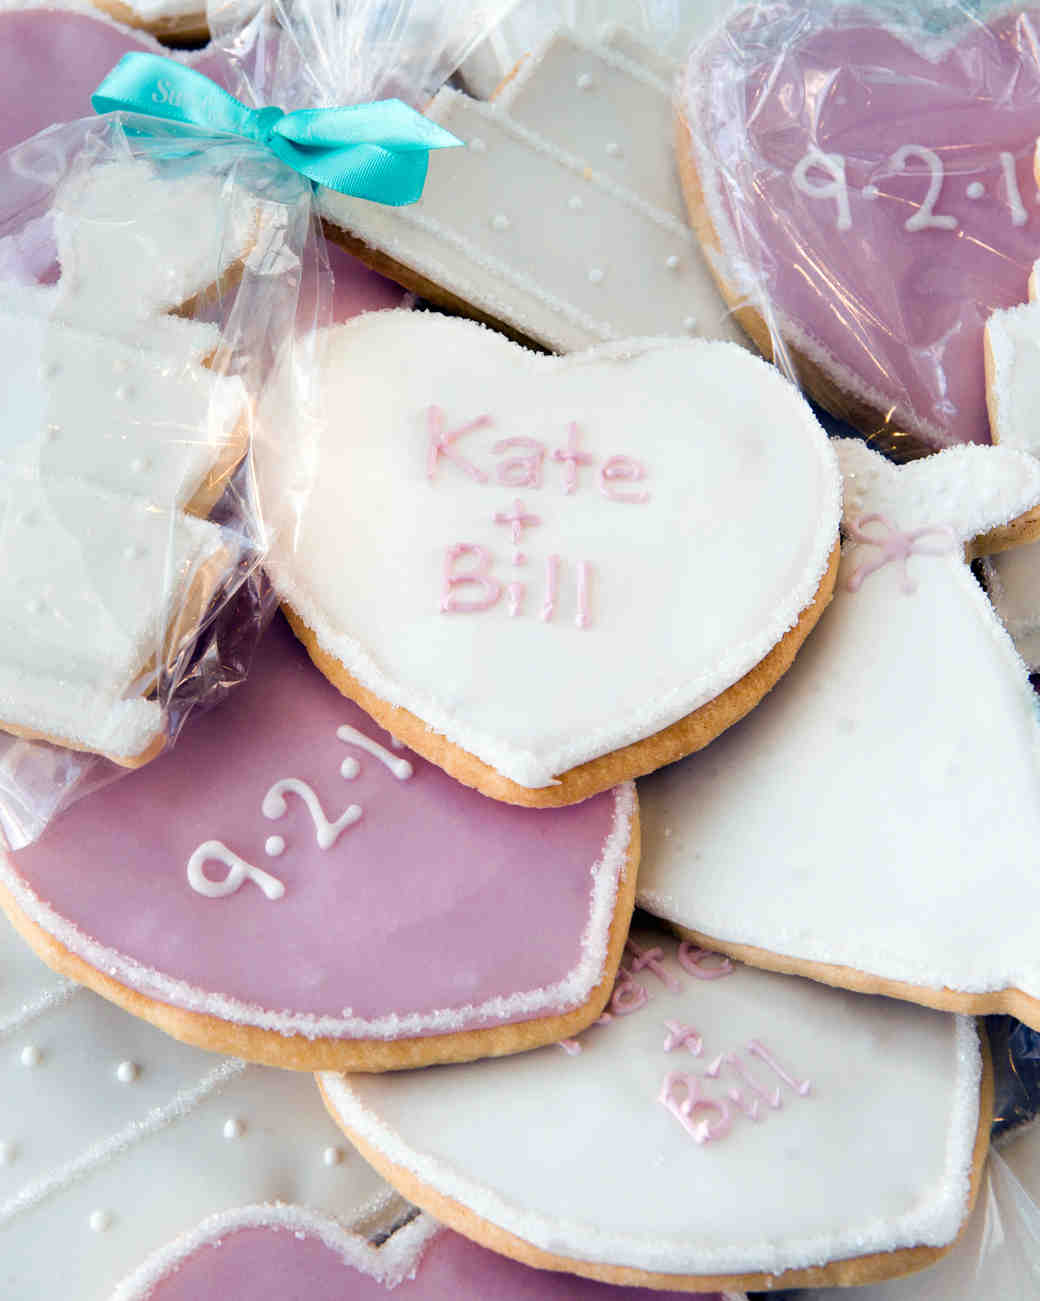 learn-the-lingo-frosting-royal-icing-susiecakes-0814.jpg